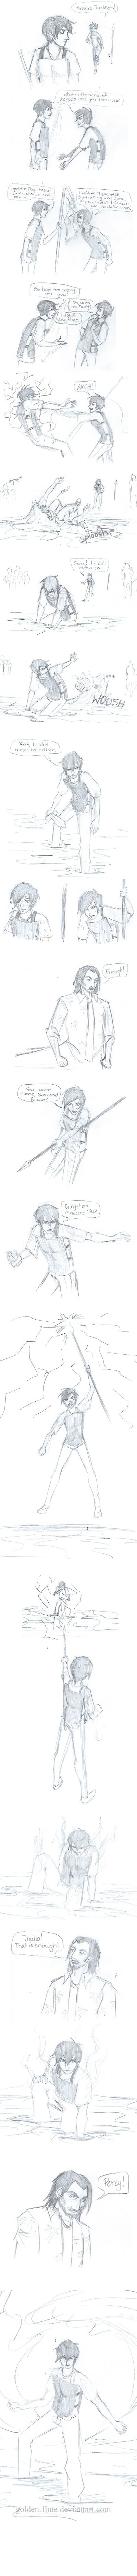 Percy Jackson-- Percy vs. Thalia by Golden-Flute.deviantart.com on @deviantART